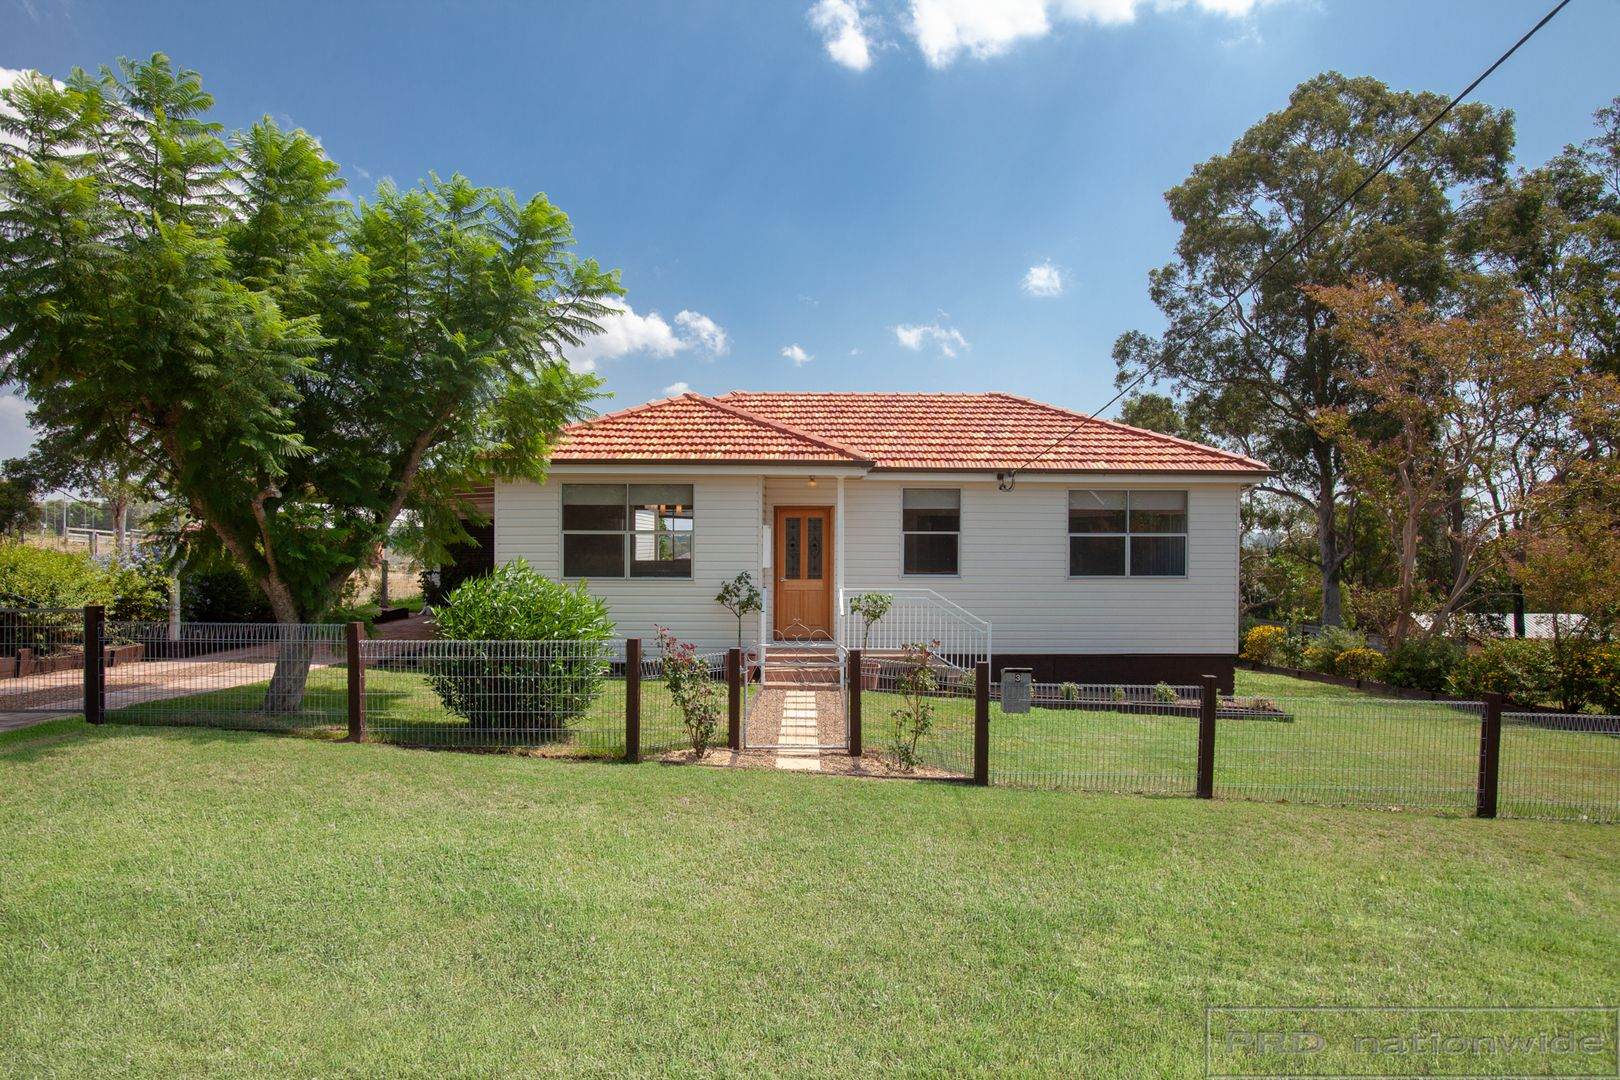 3 Raworth Avenue, Raworth NSW 2321, Image 0